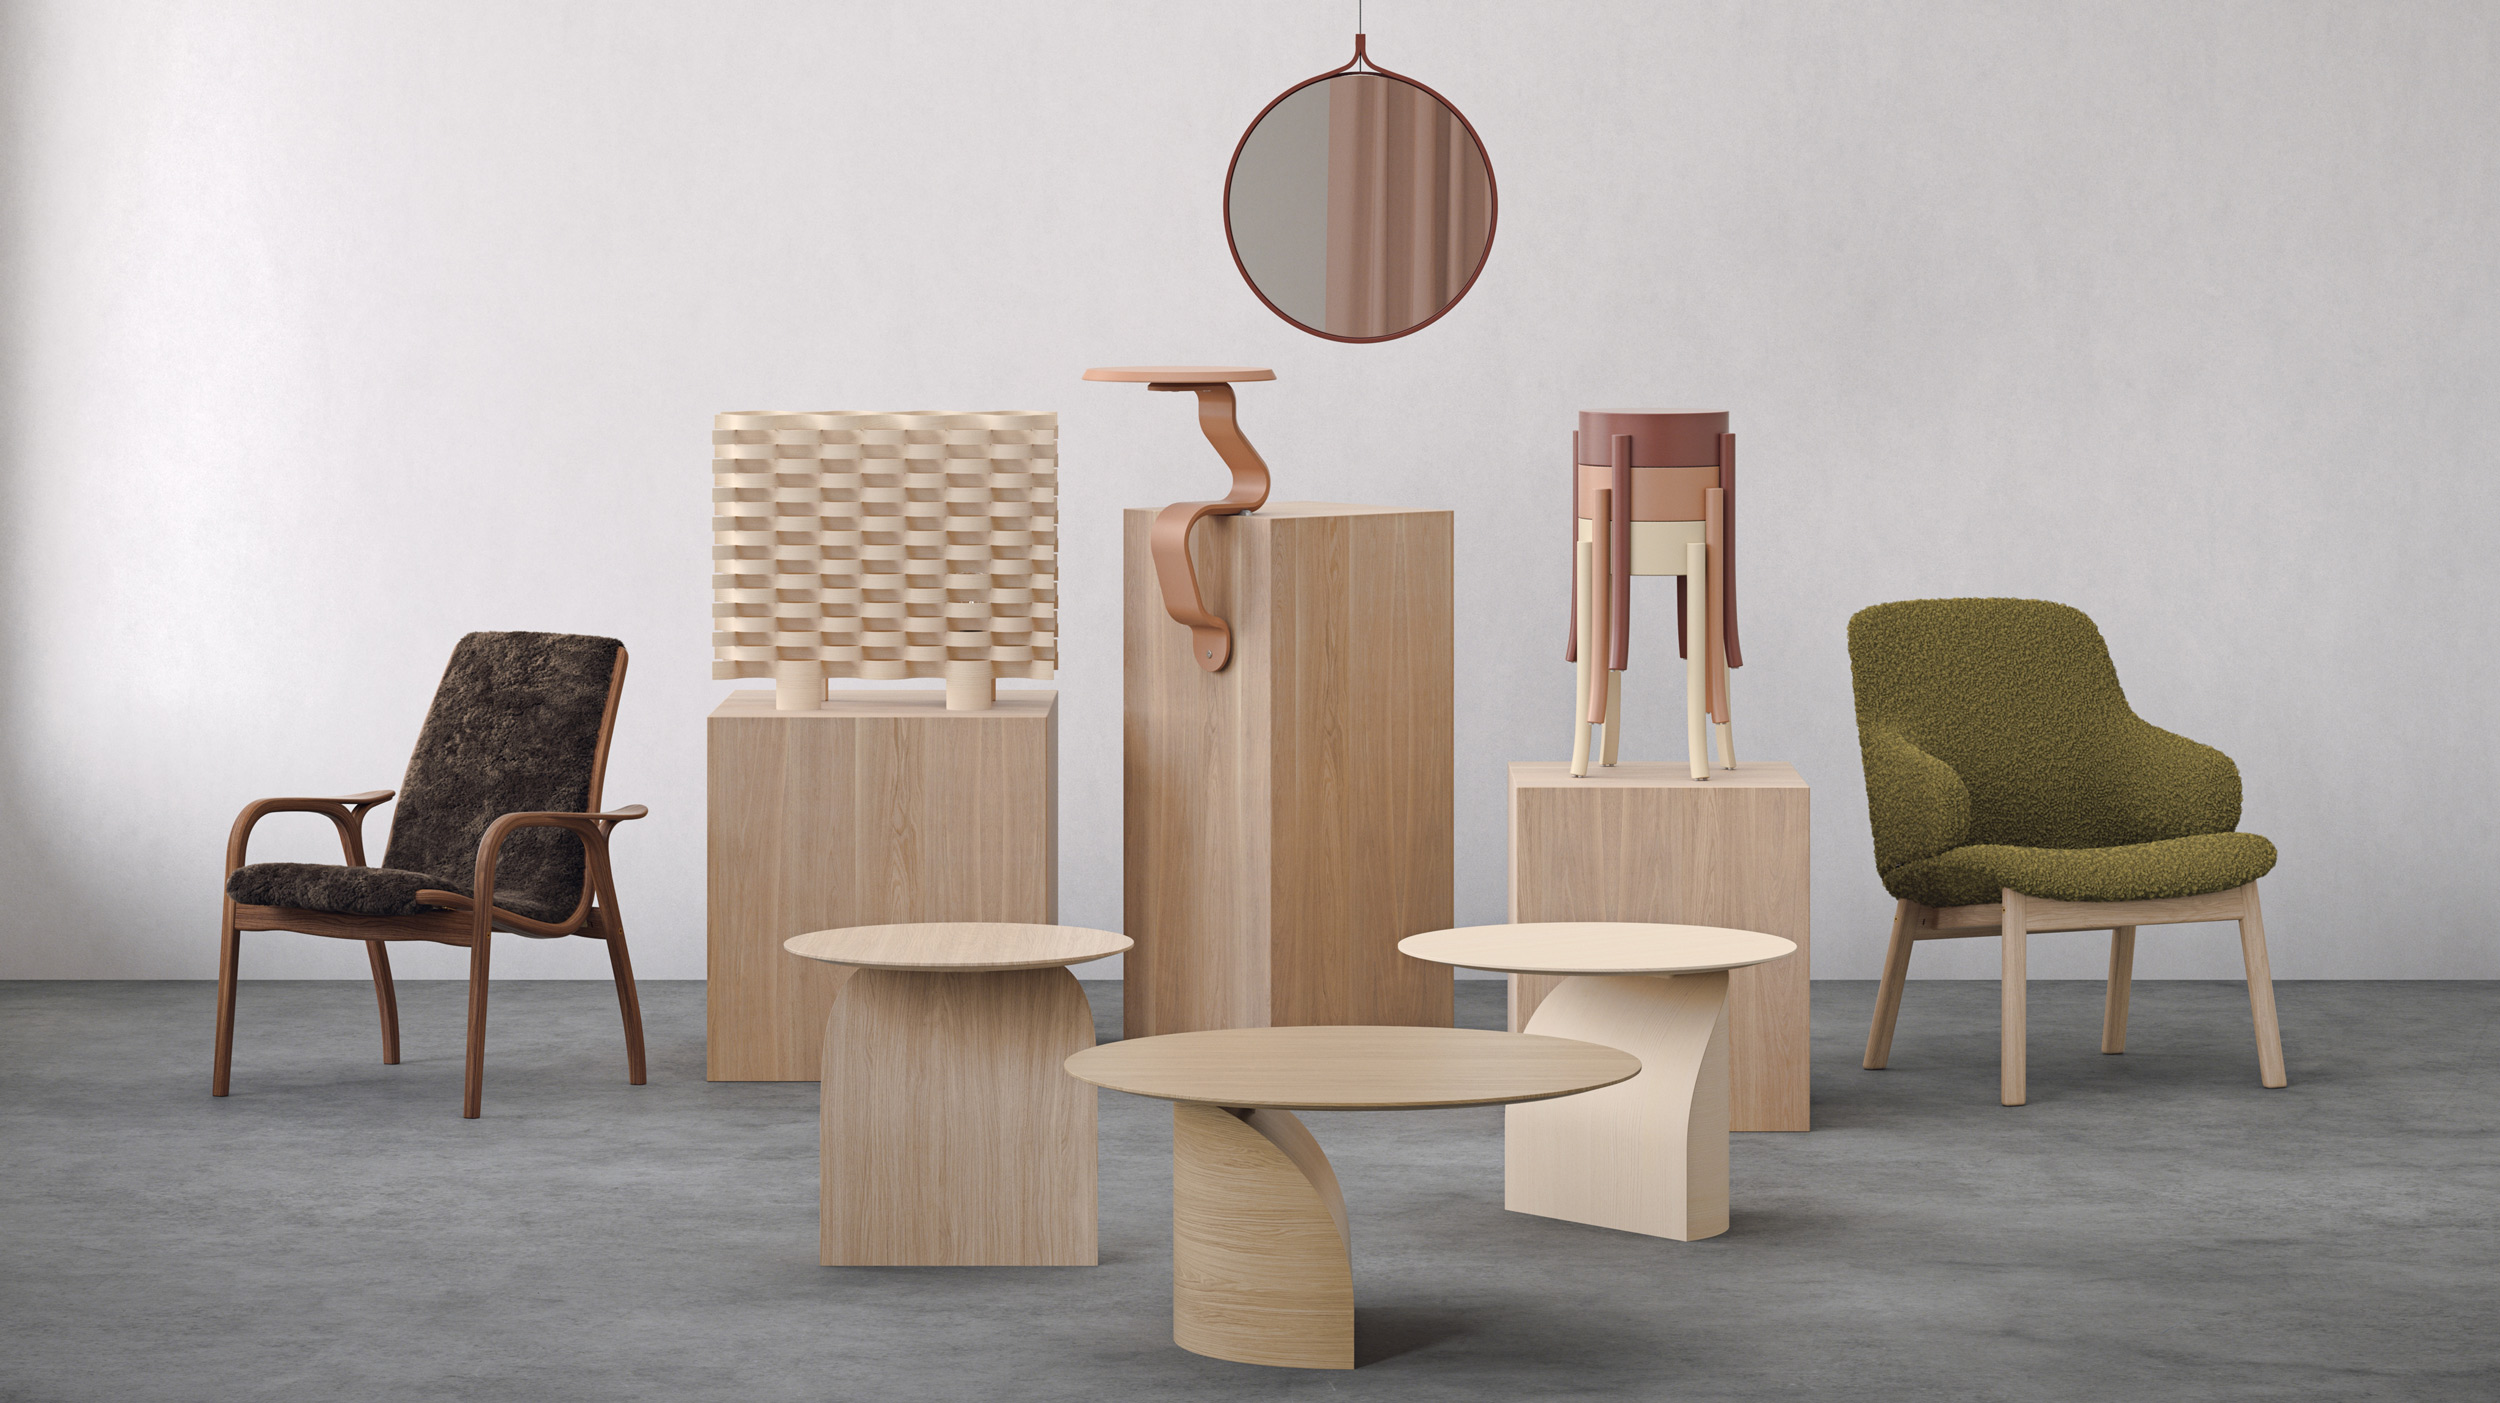 Sophisticated simplicity from Småland